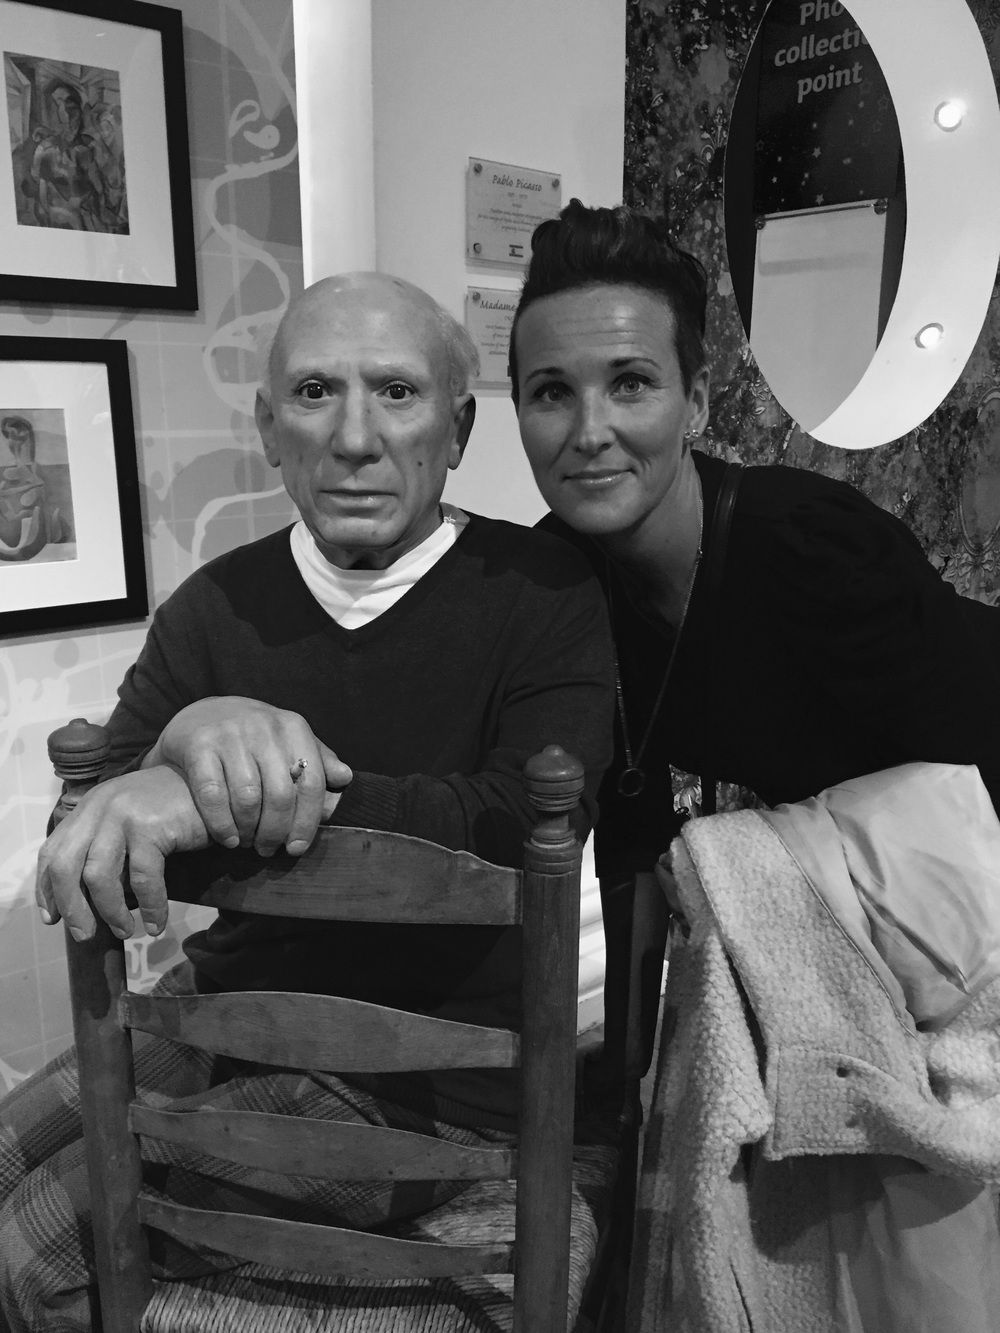 Picasso & me in London.